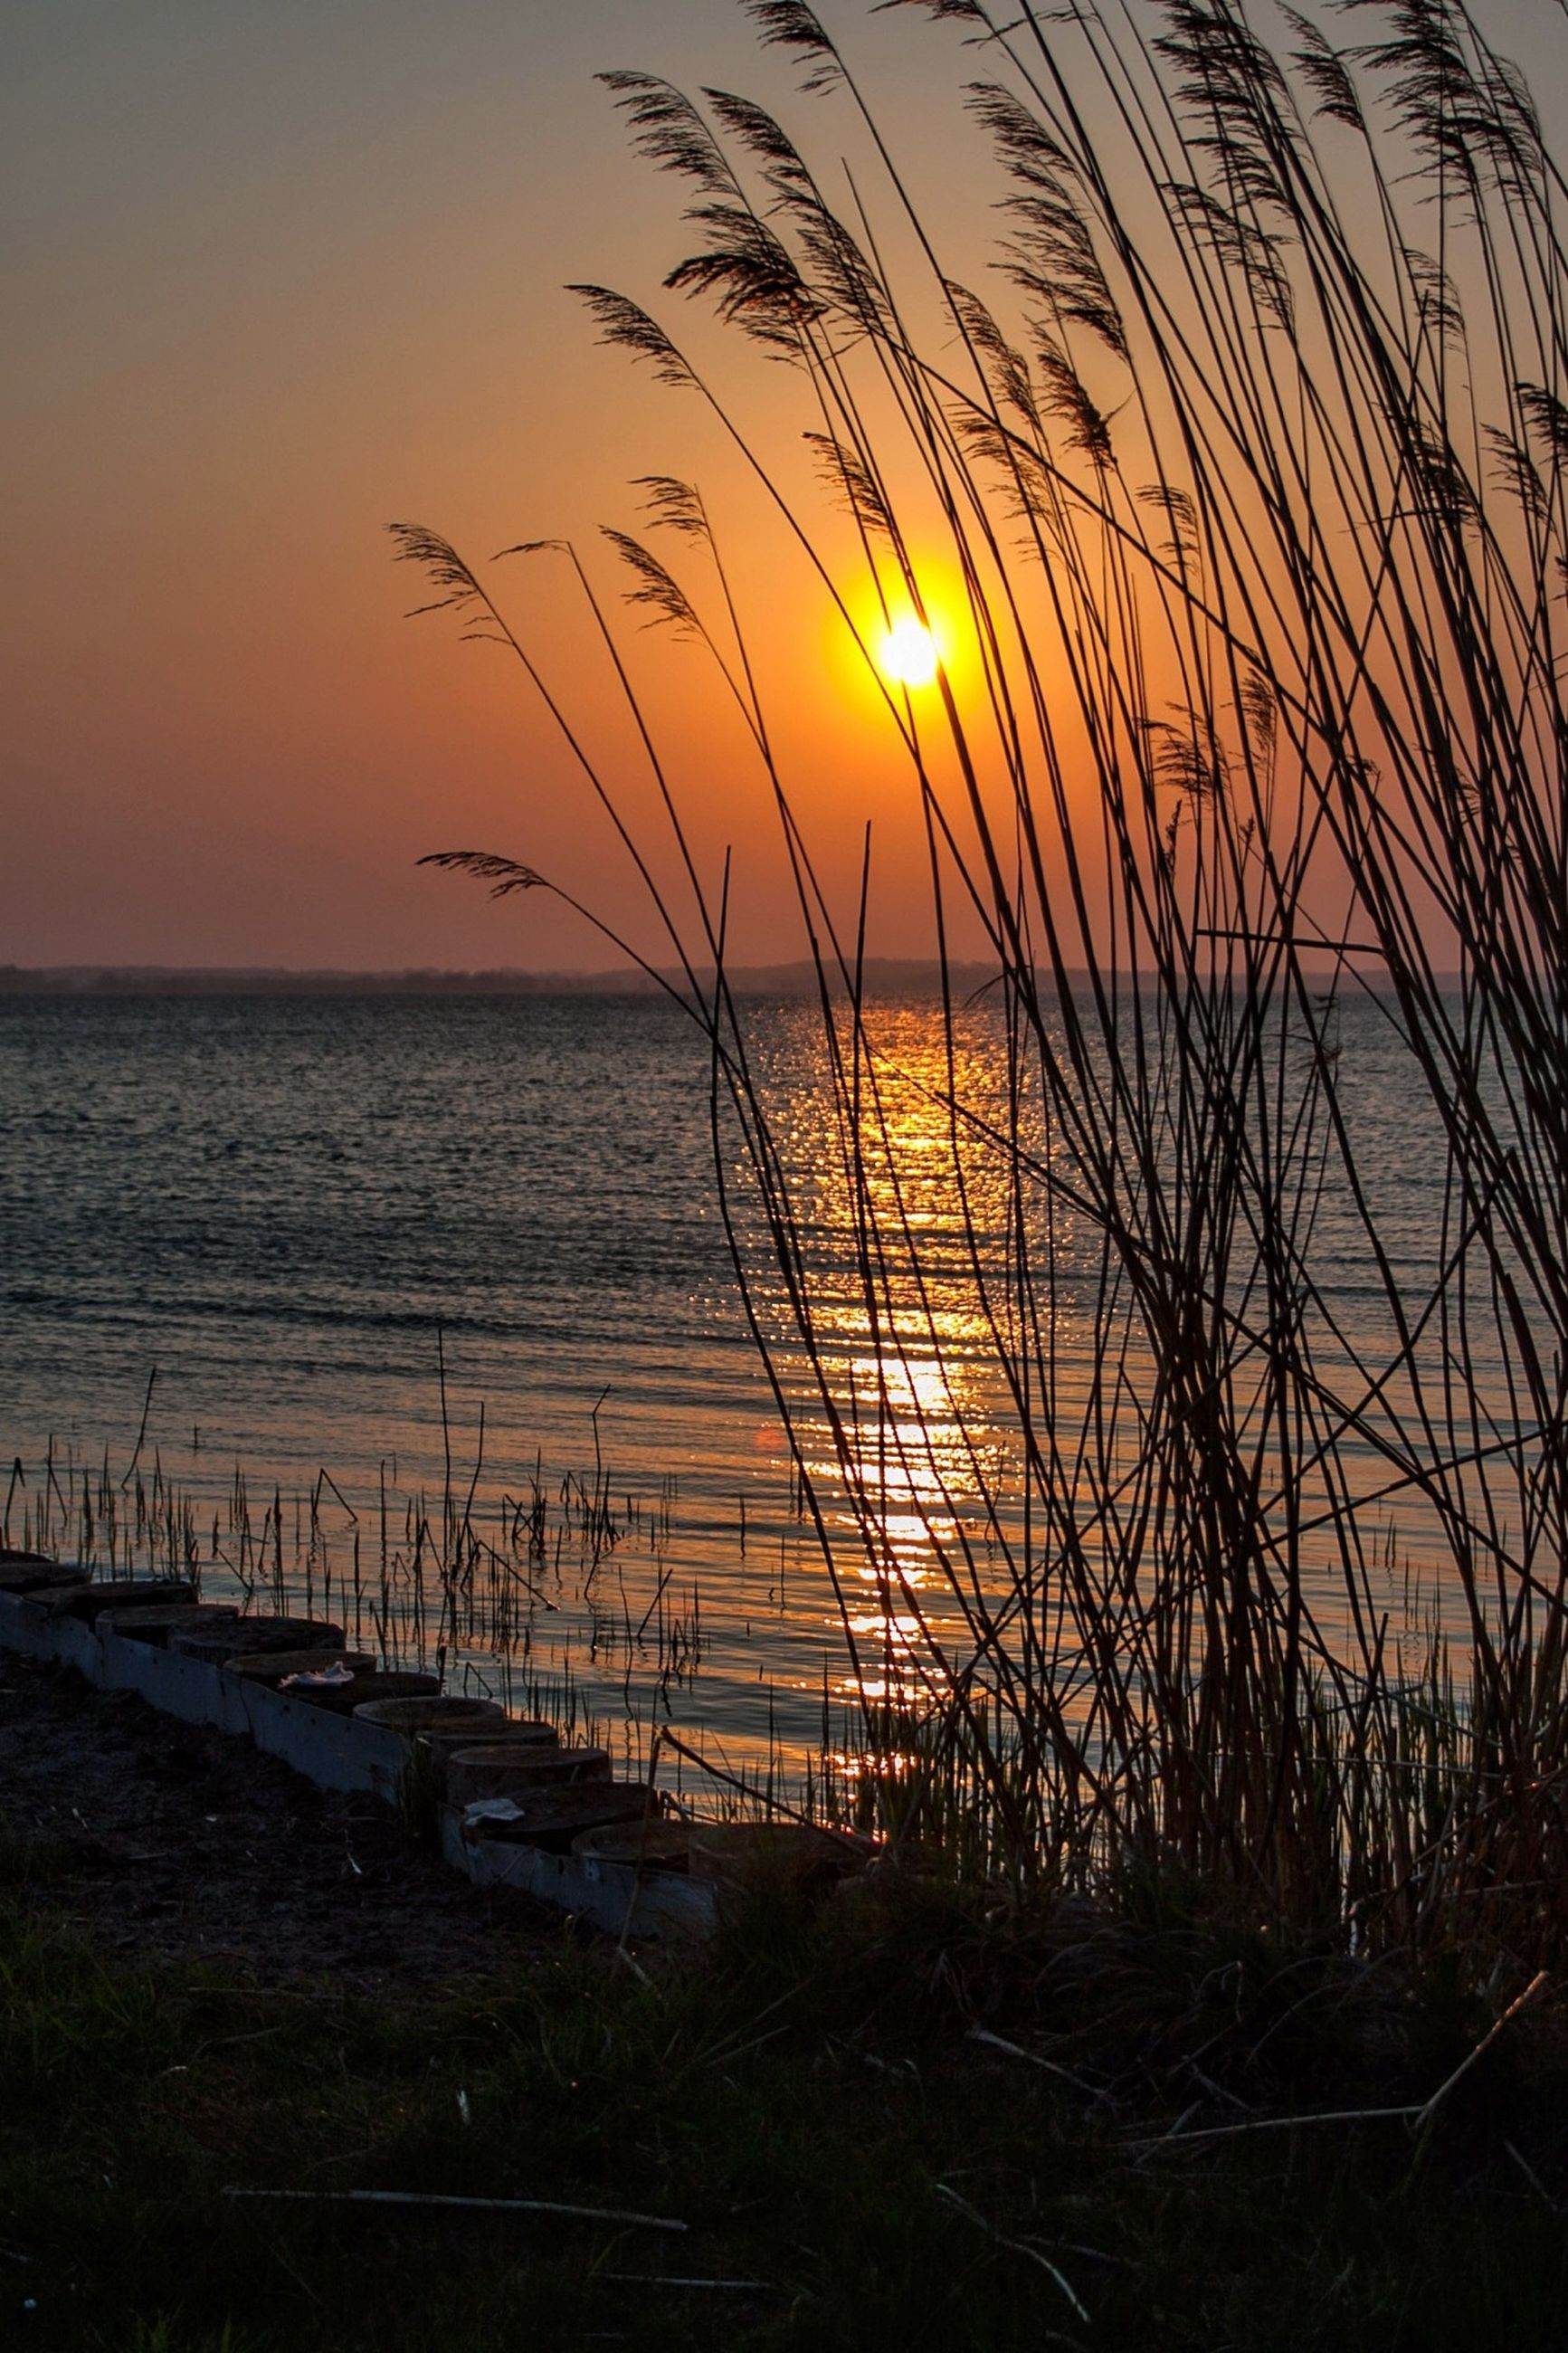 sunset, sea, water, horizon over water, beach, tranquil scene, scenics, tranquility, orange color, beauty in nature, sun, shore, silhouette, nature, idyllic, sky, reflection, plant, remote, outdoors